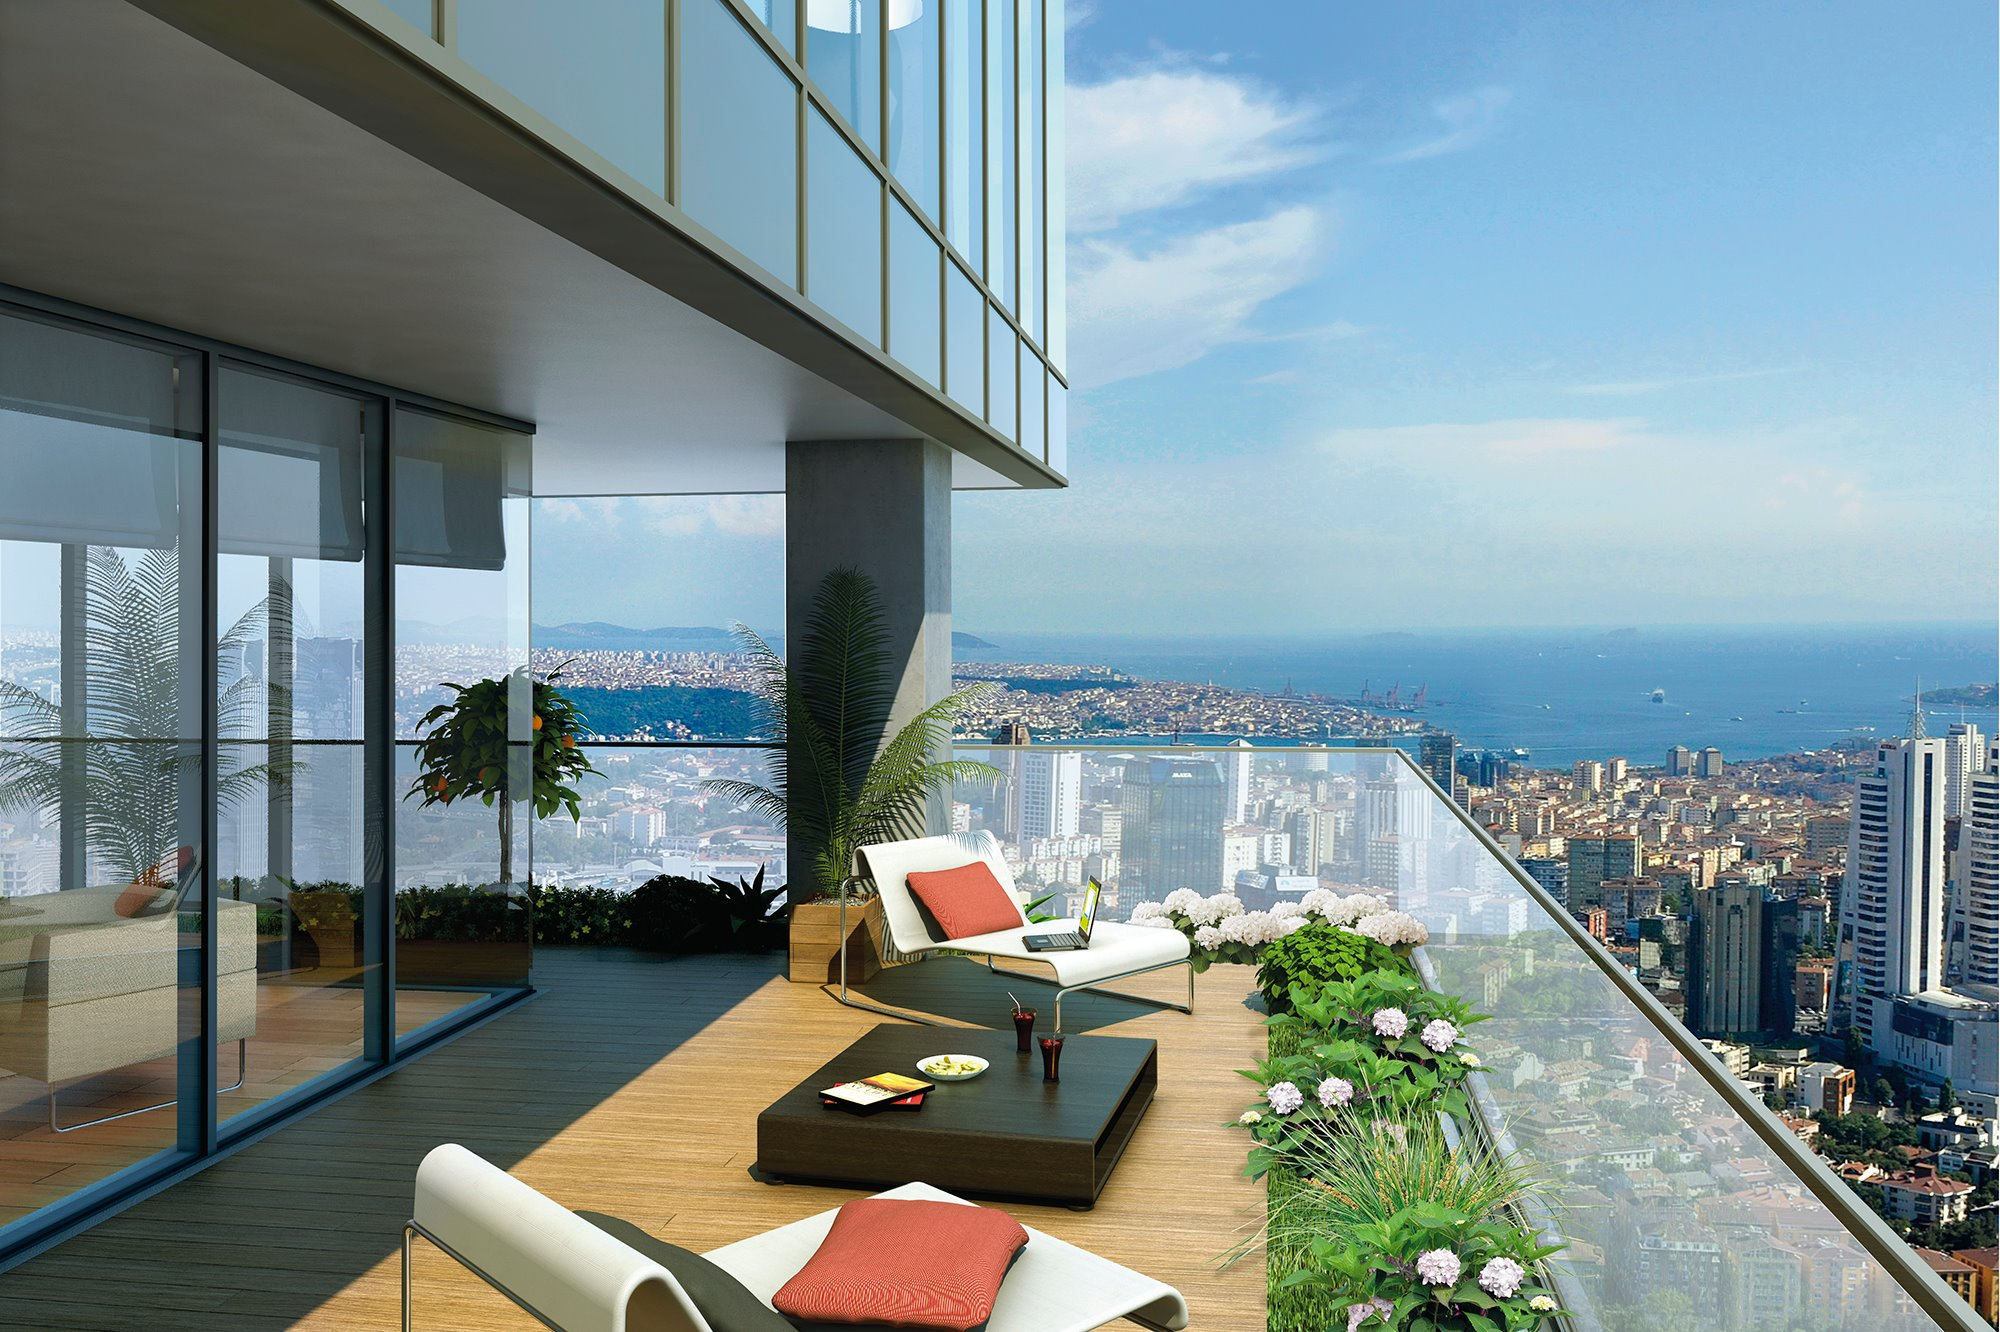 Miami Or Istanbul Property, Which Is Best?